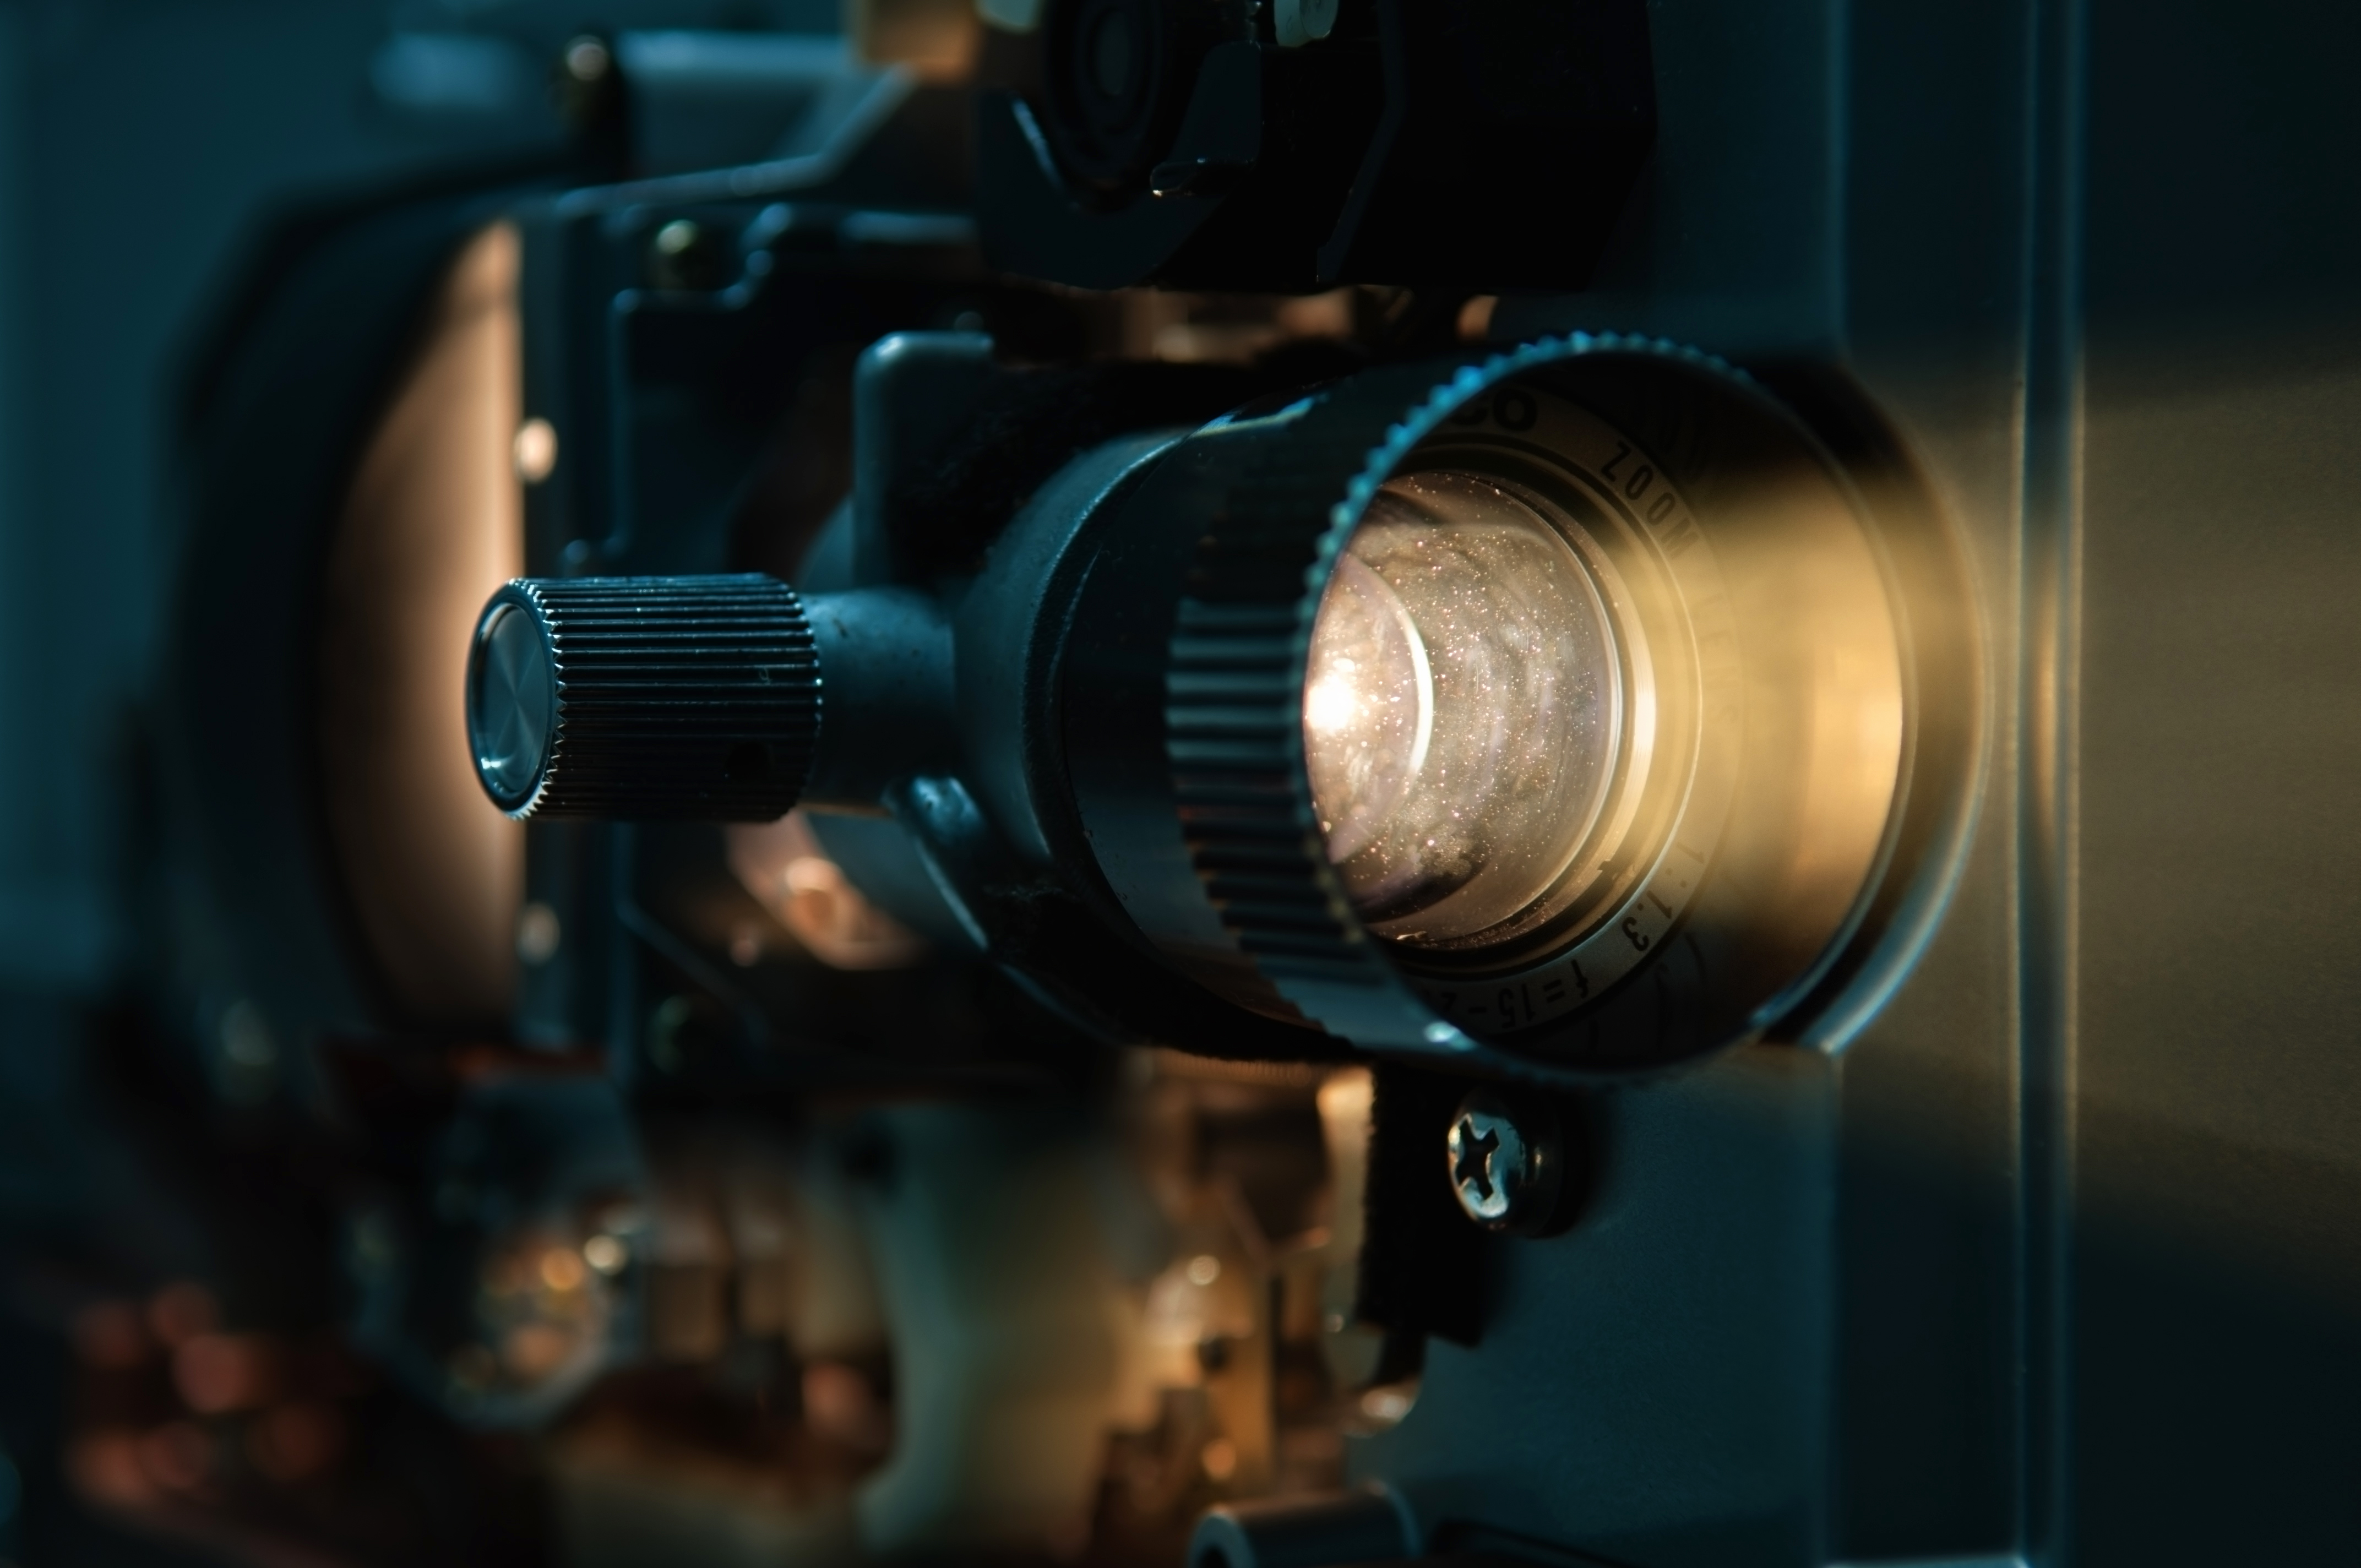 A close up photo of a cinema projector